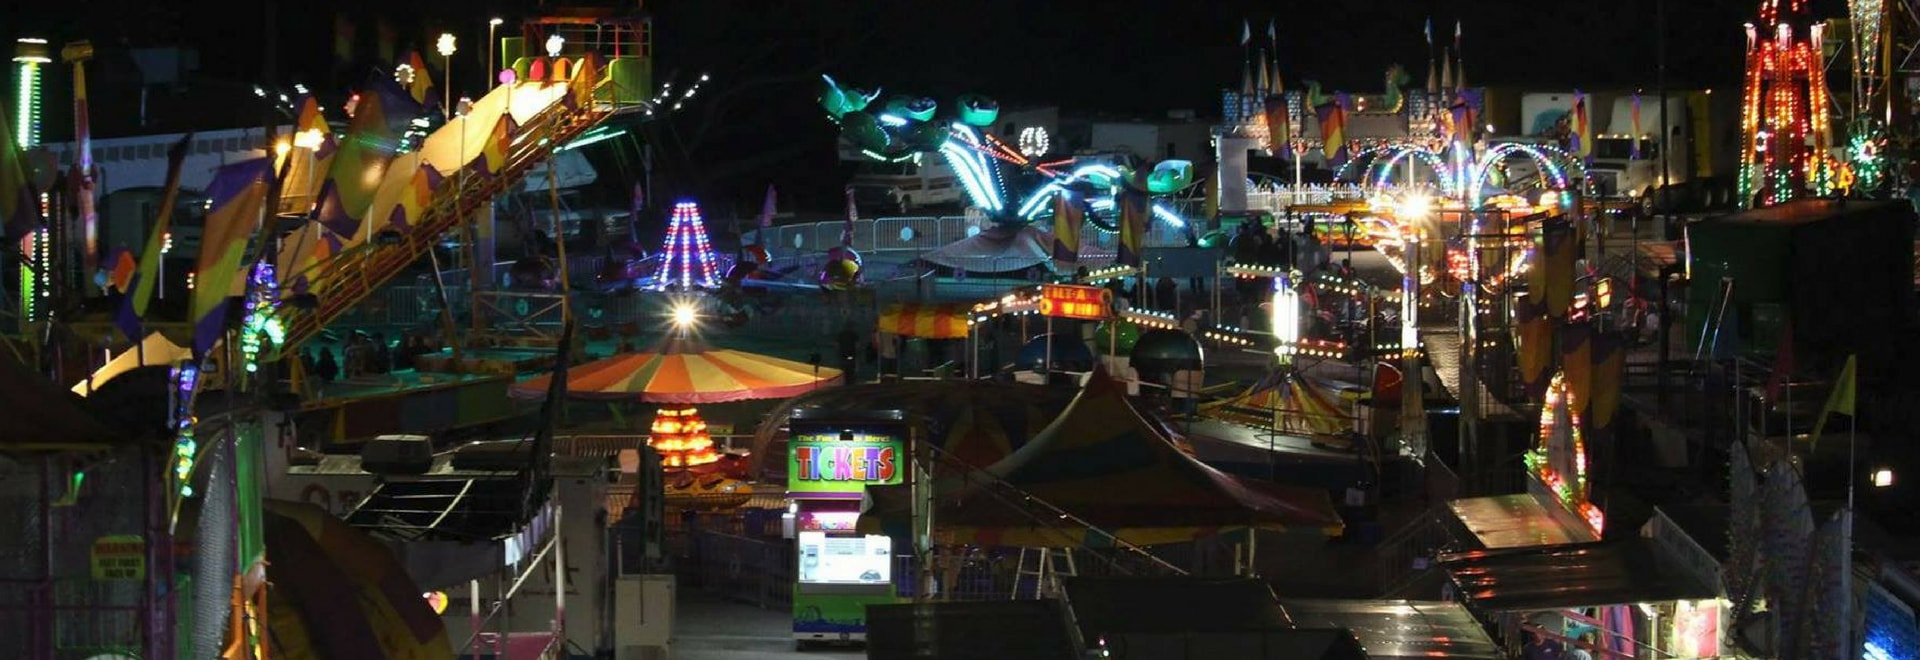 corniest midway at night